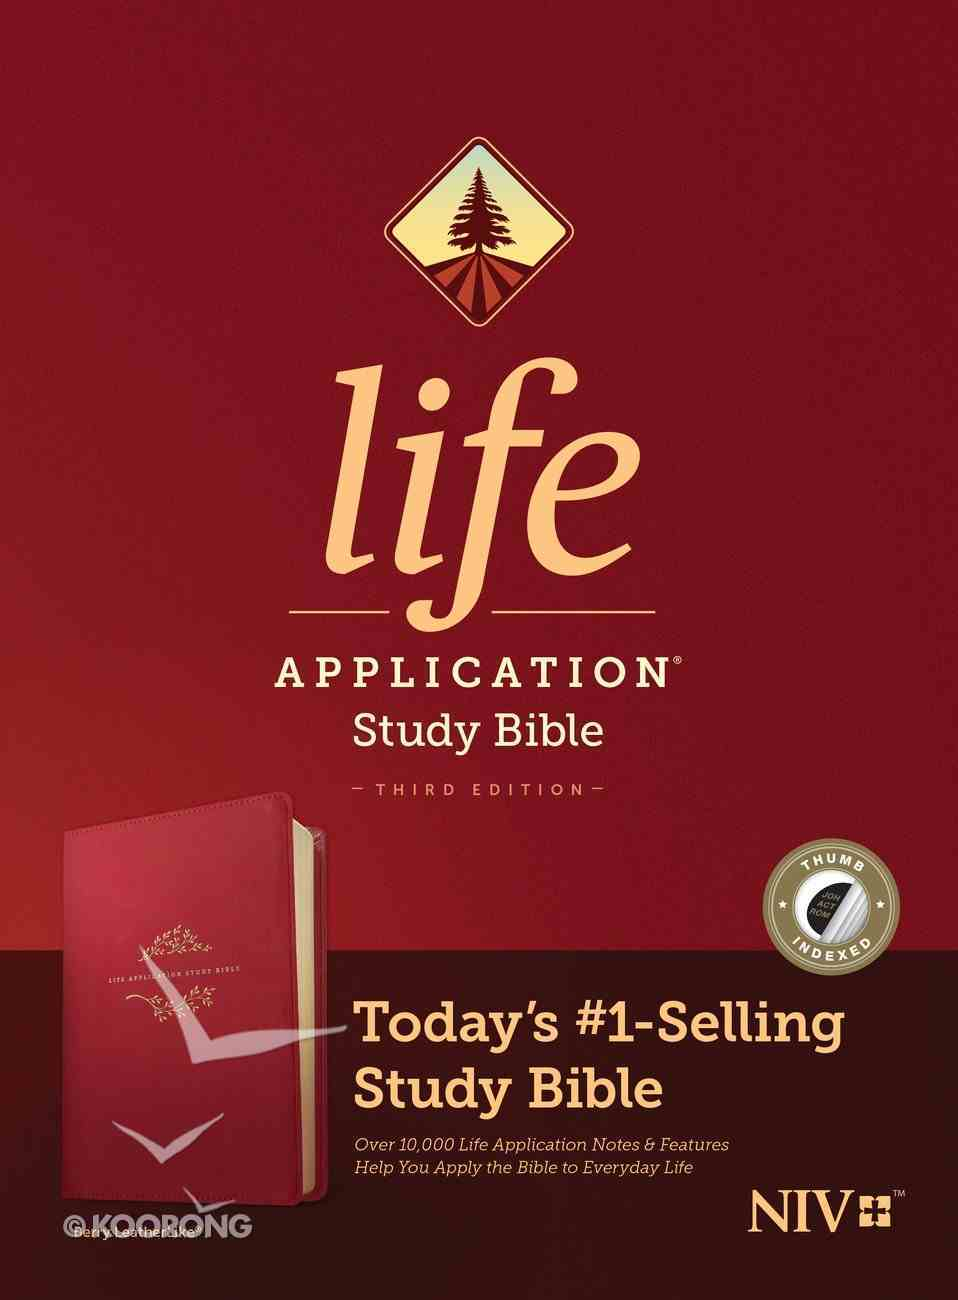 NIV Life Application Study Bible 3rd Edition Berry Indexed (Black Letter Edition) Imitation Leather